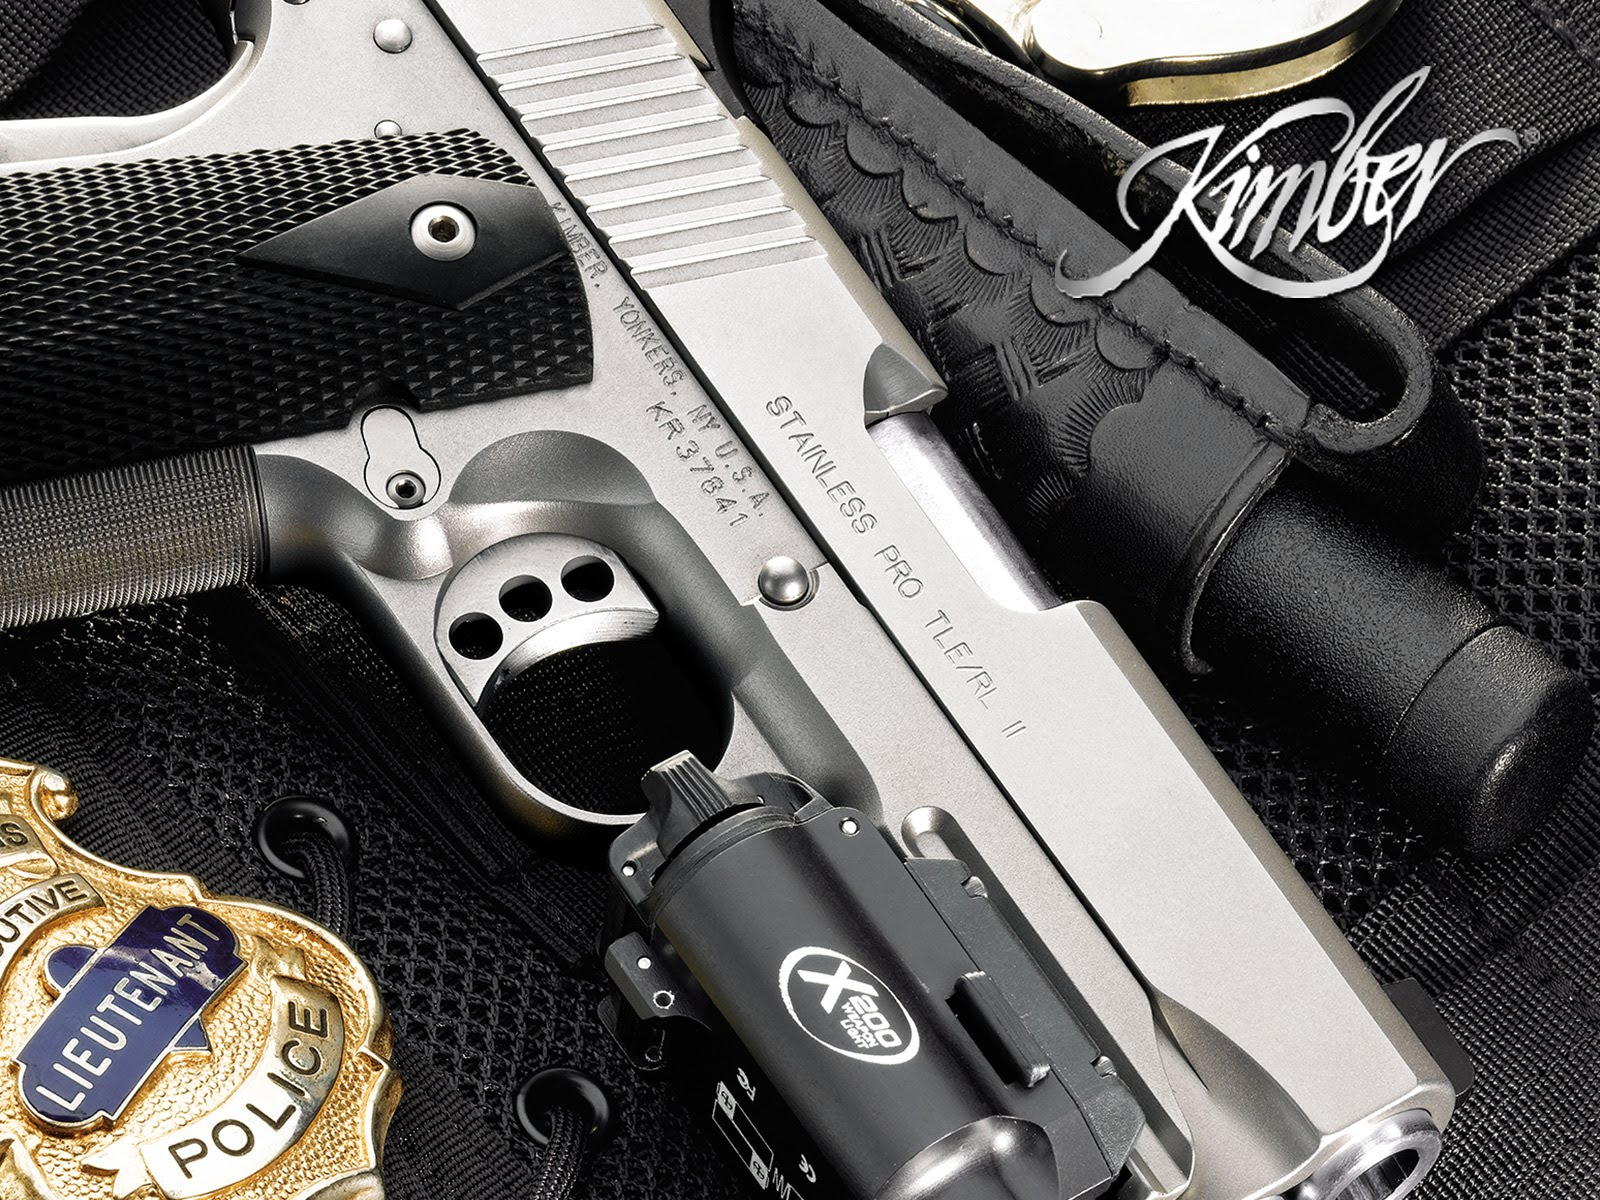 50] Kimber 1911 Wallpaper on WallpaperSafari 1600x1200